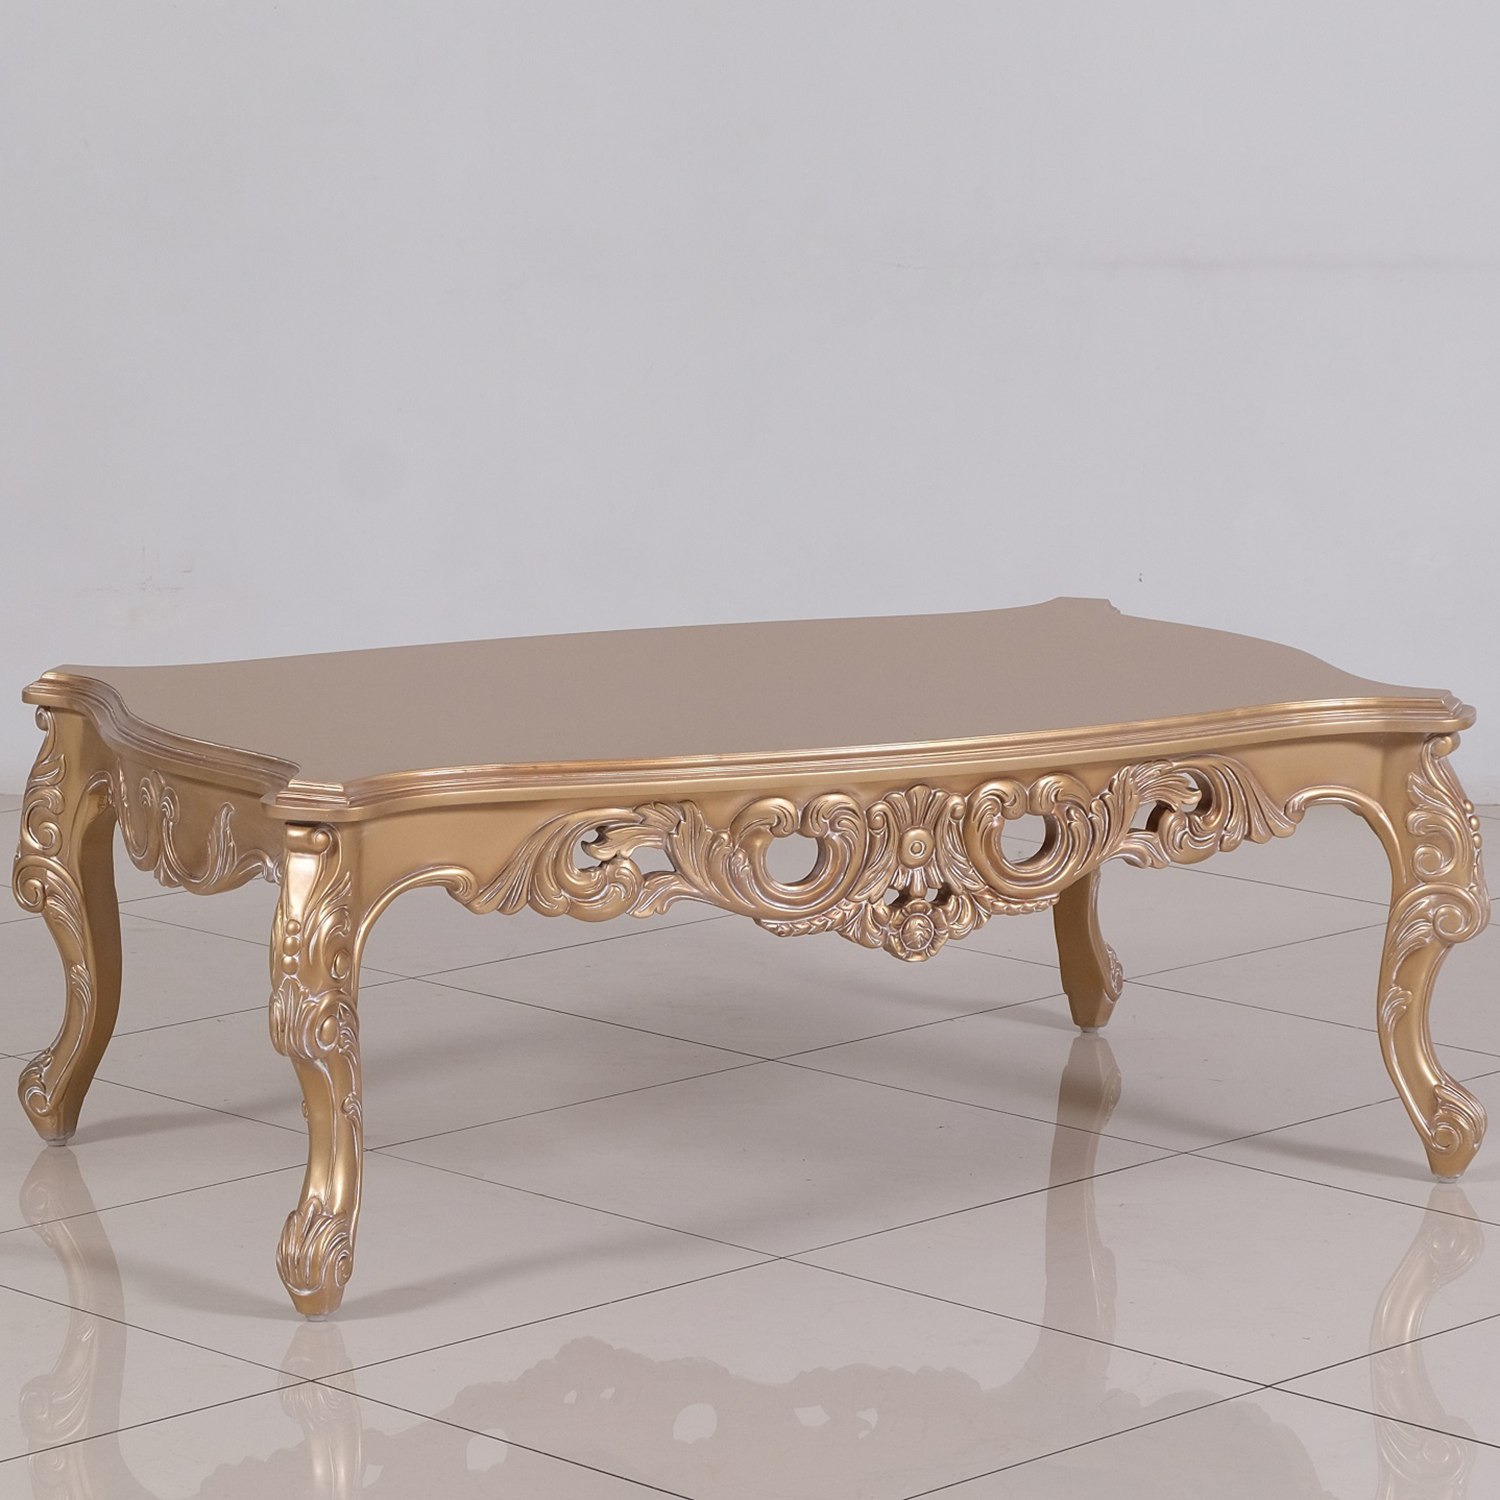 Grand European Luxury Furniture 32006-CT Imperial Palace